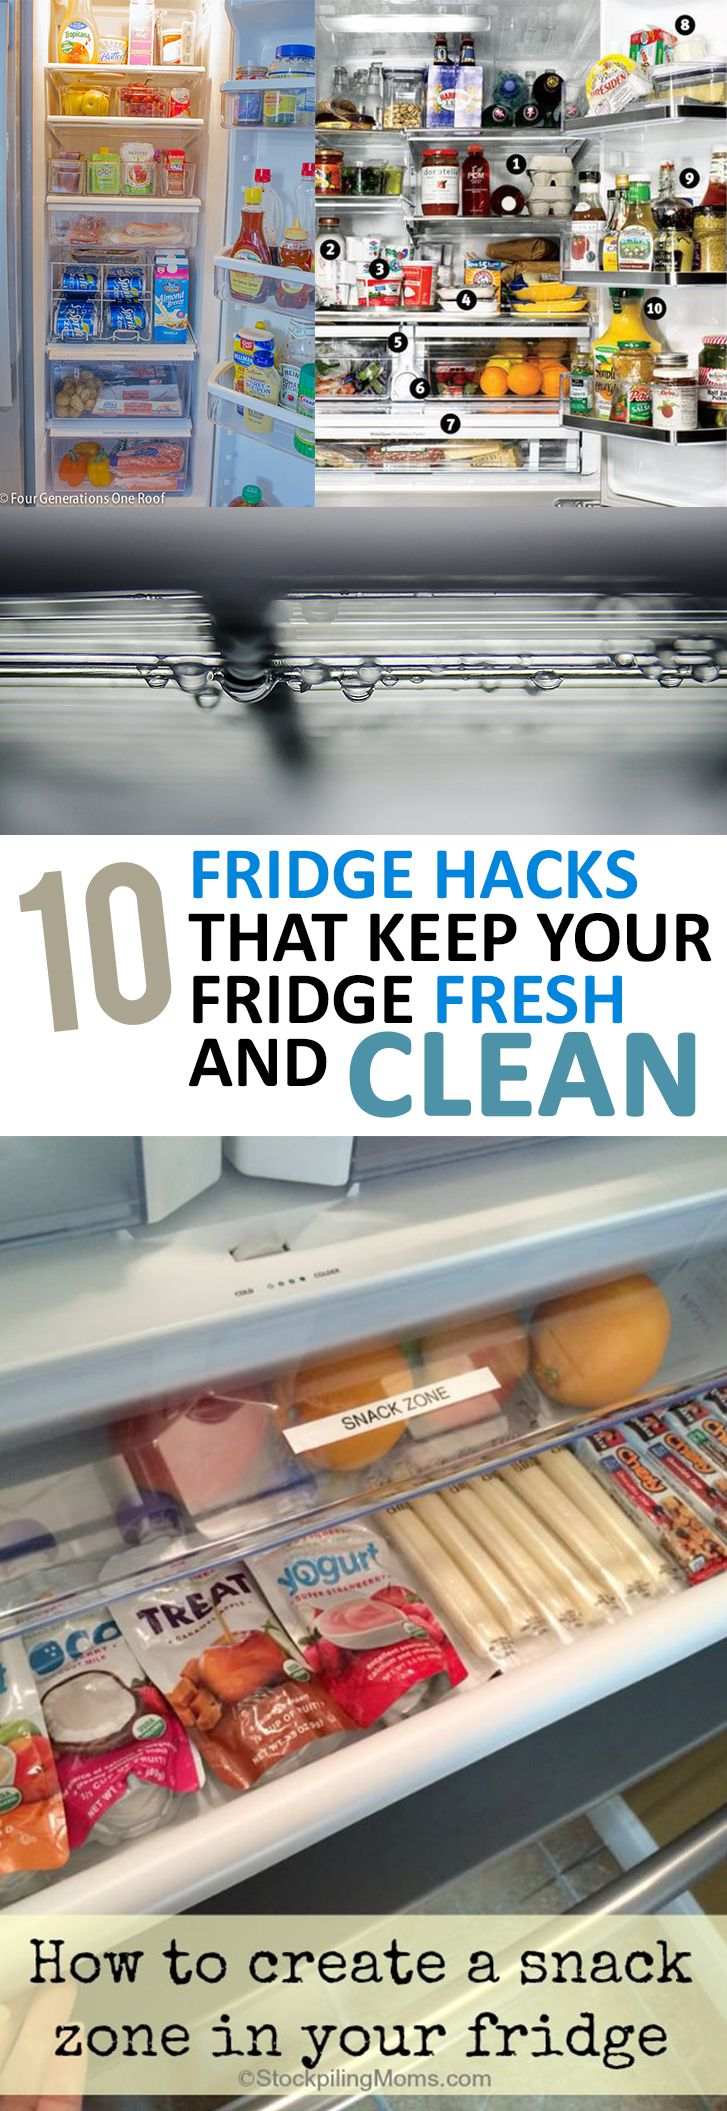 Keep your fridge fresh and clean with these great tips!